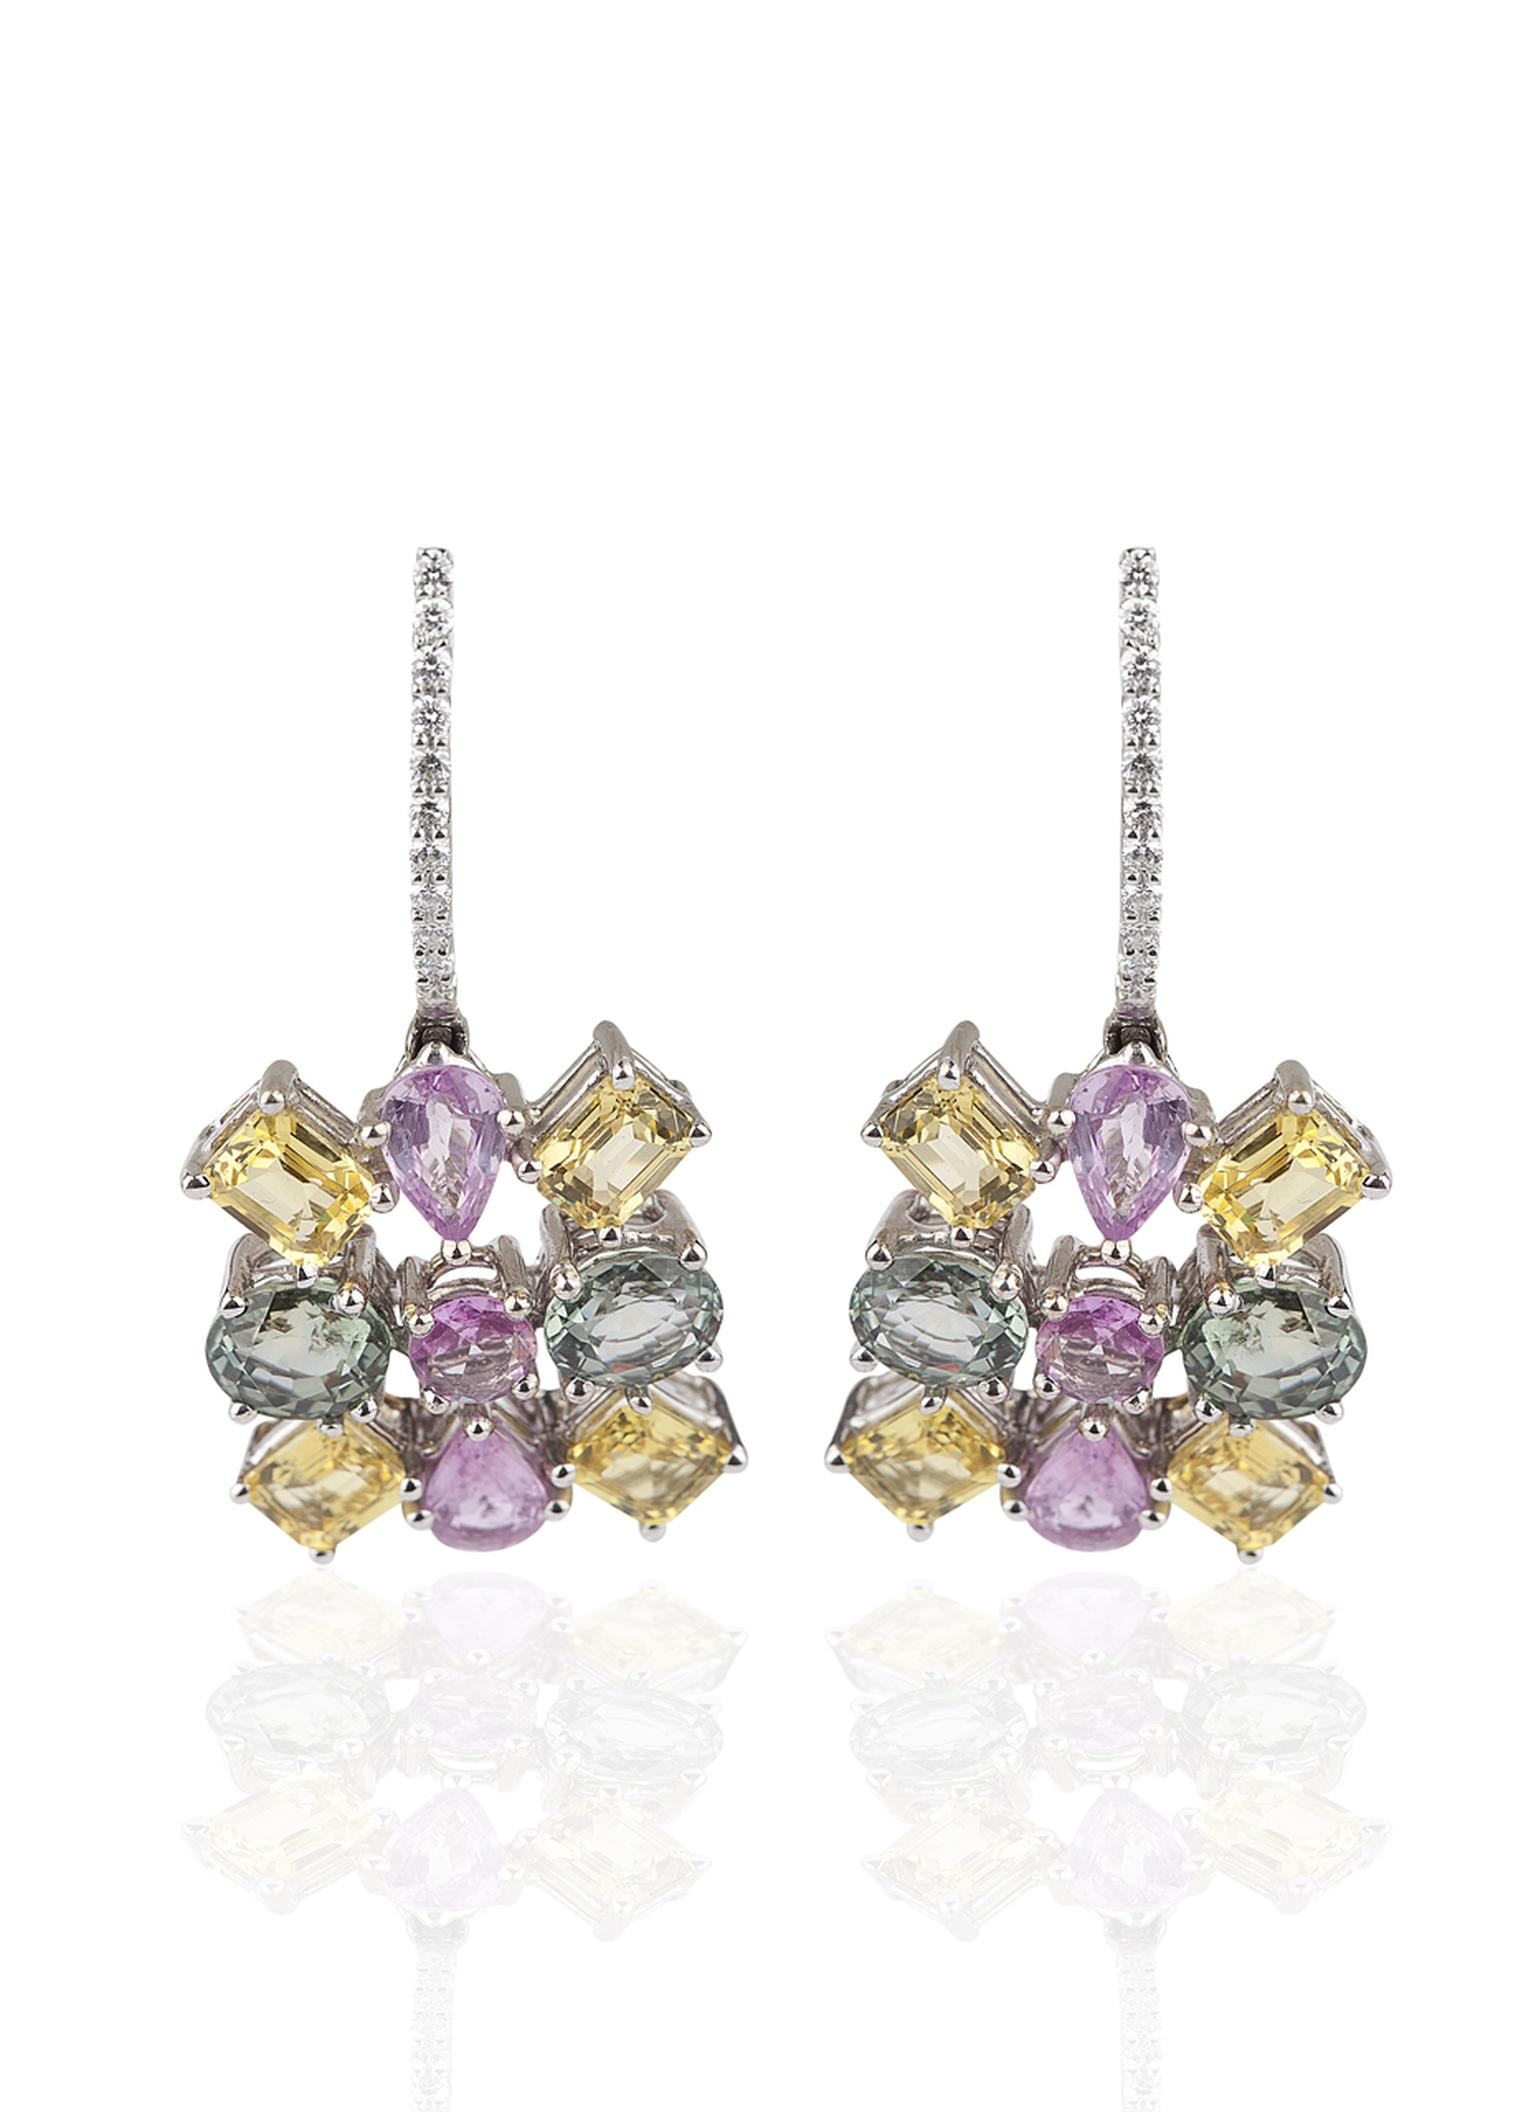 Mirari white gold Water fall earrings featuring pear and marquise cut multi-coloured sapphires and round white diamonds.